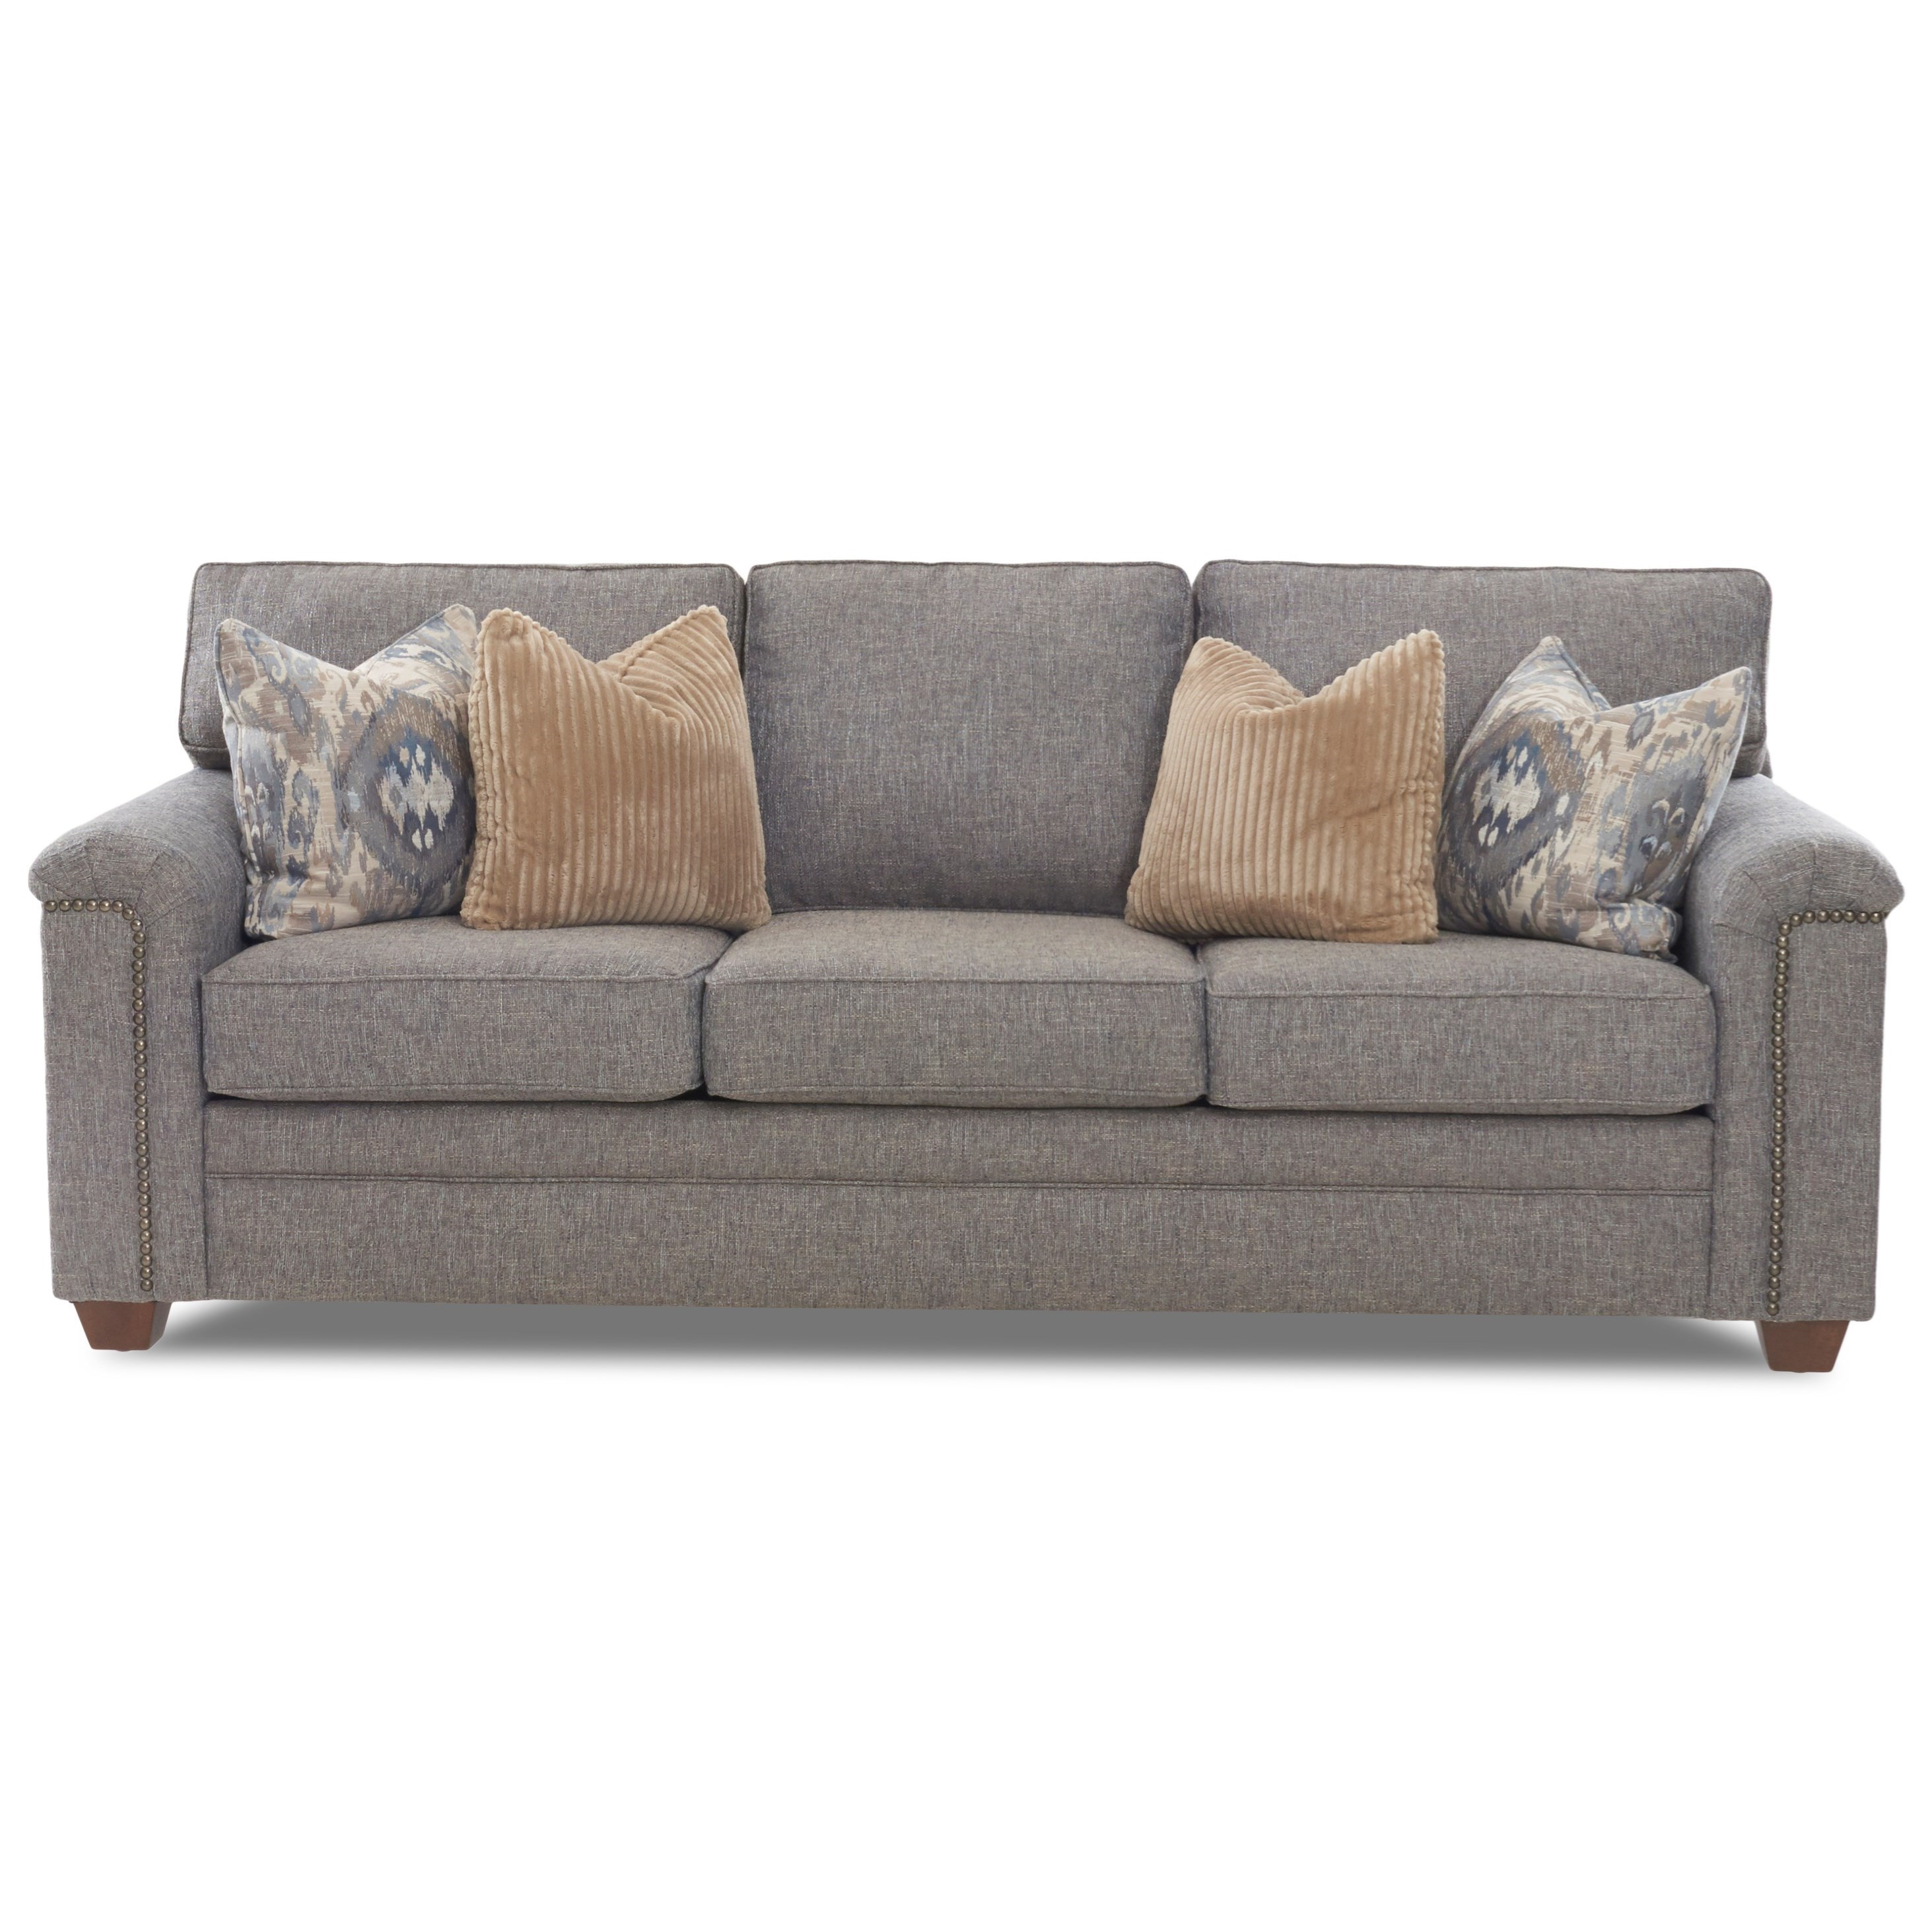 Sofa S Hollins Transitional Sofa With Nailhead Trim By Klaussner At Northeast Factory Direct